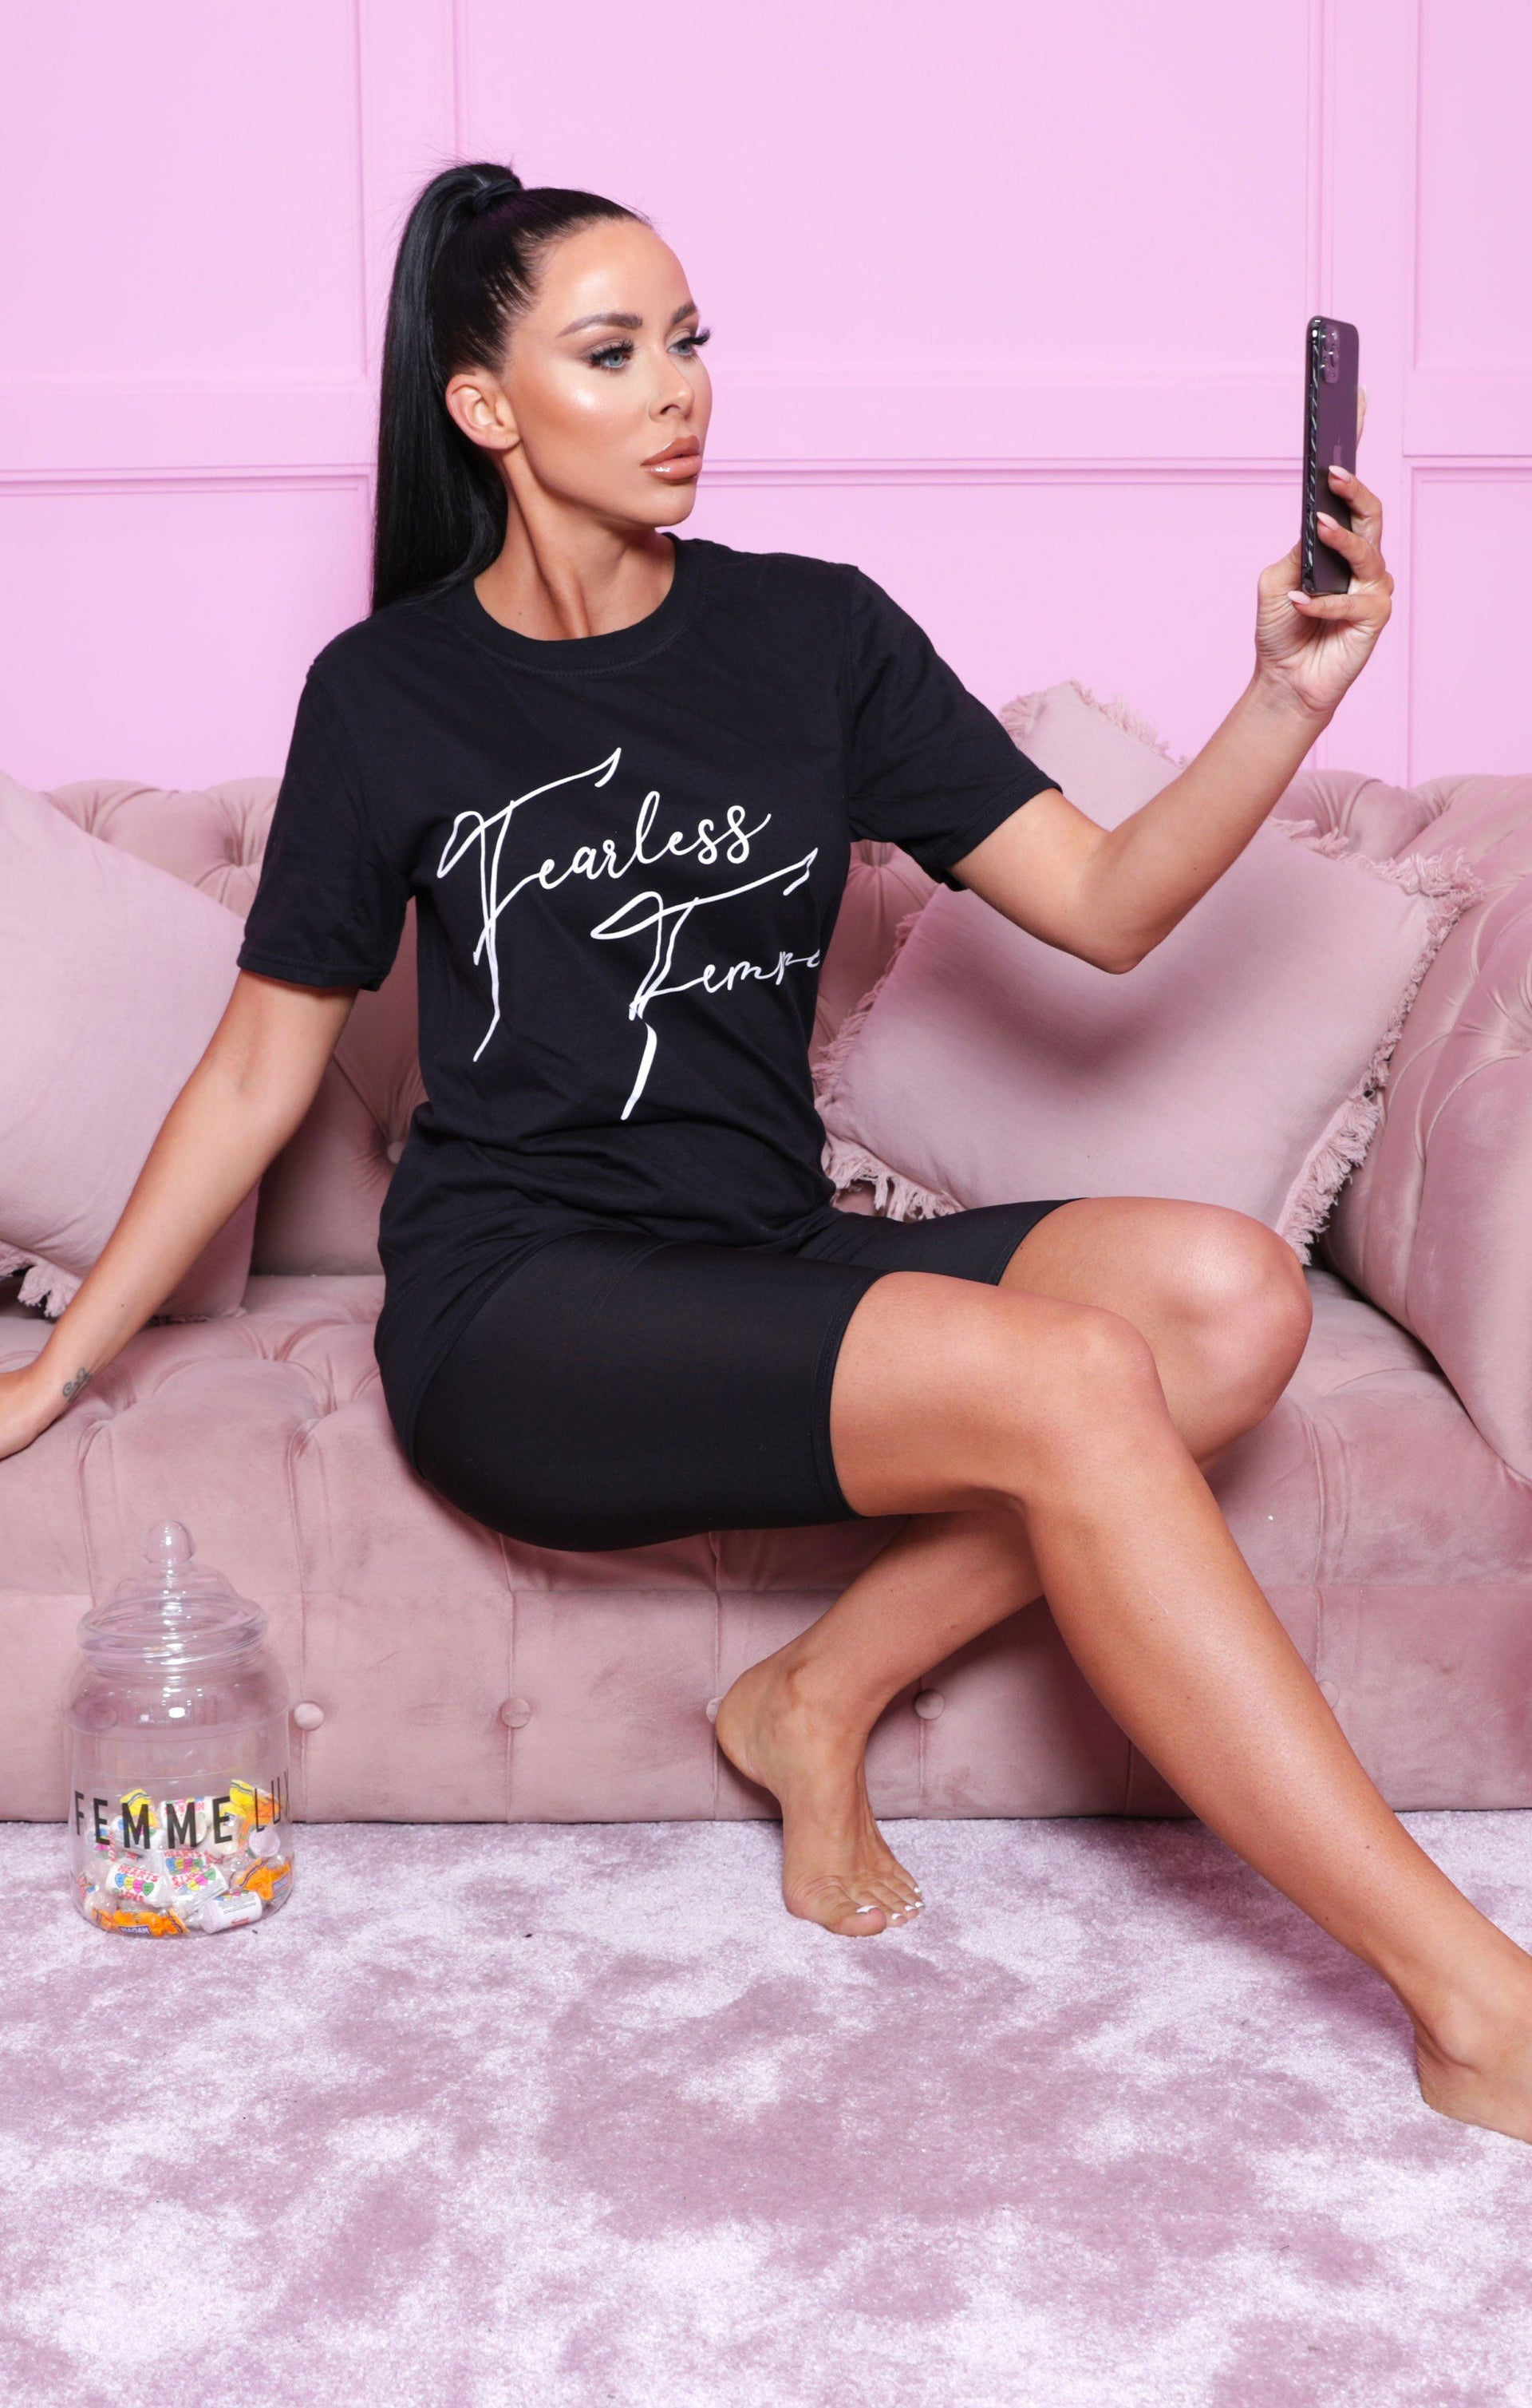 Black 'Fearless Femme' Oversized T-Shirt - Lily